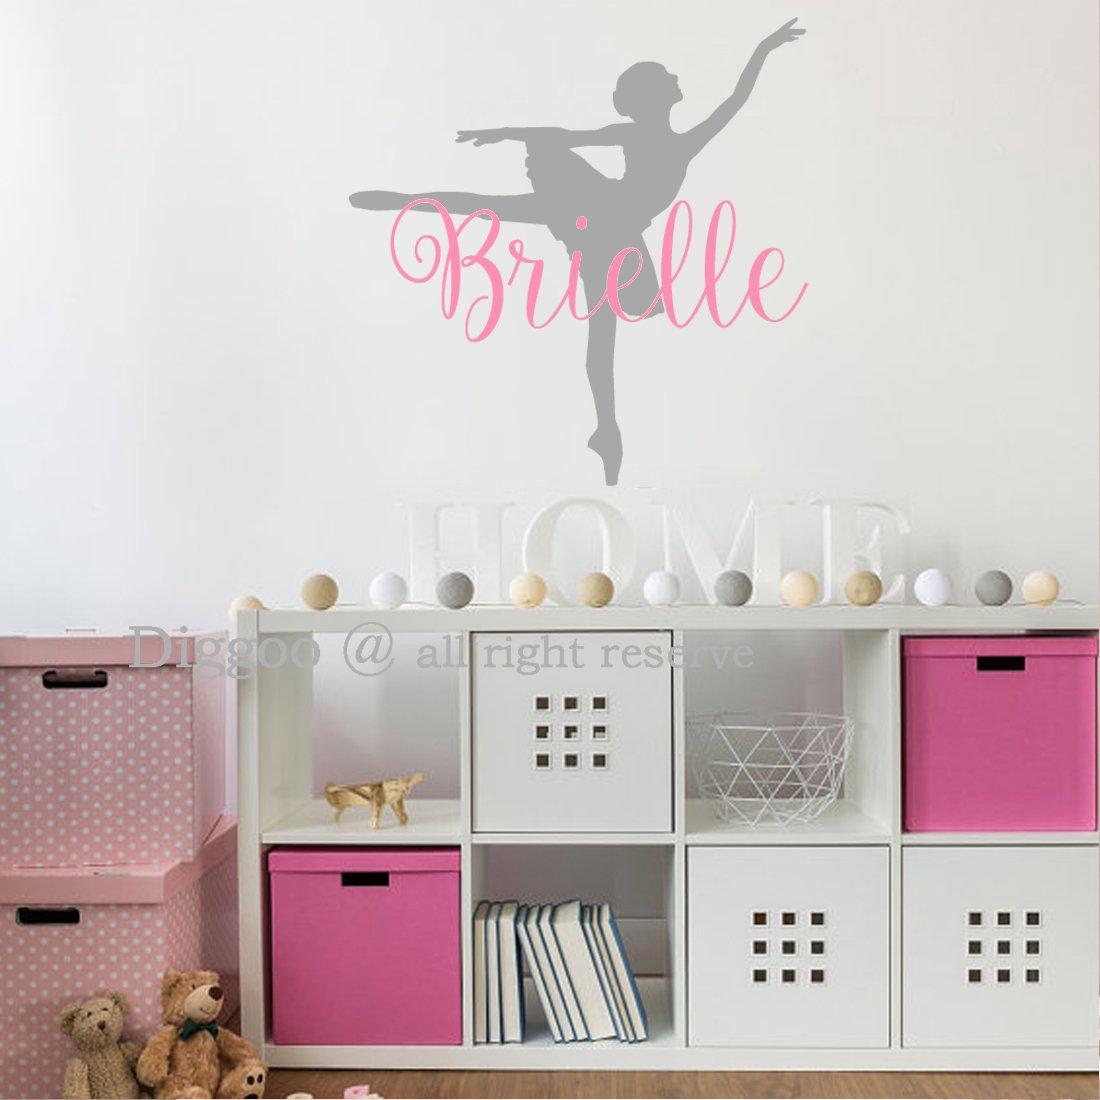 Amazon.com: Ballerina Wall Decal - Personalized Girls Name Wall ...